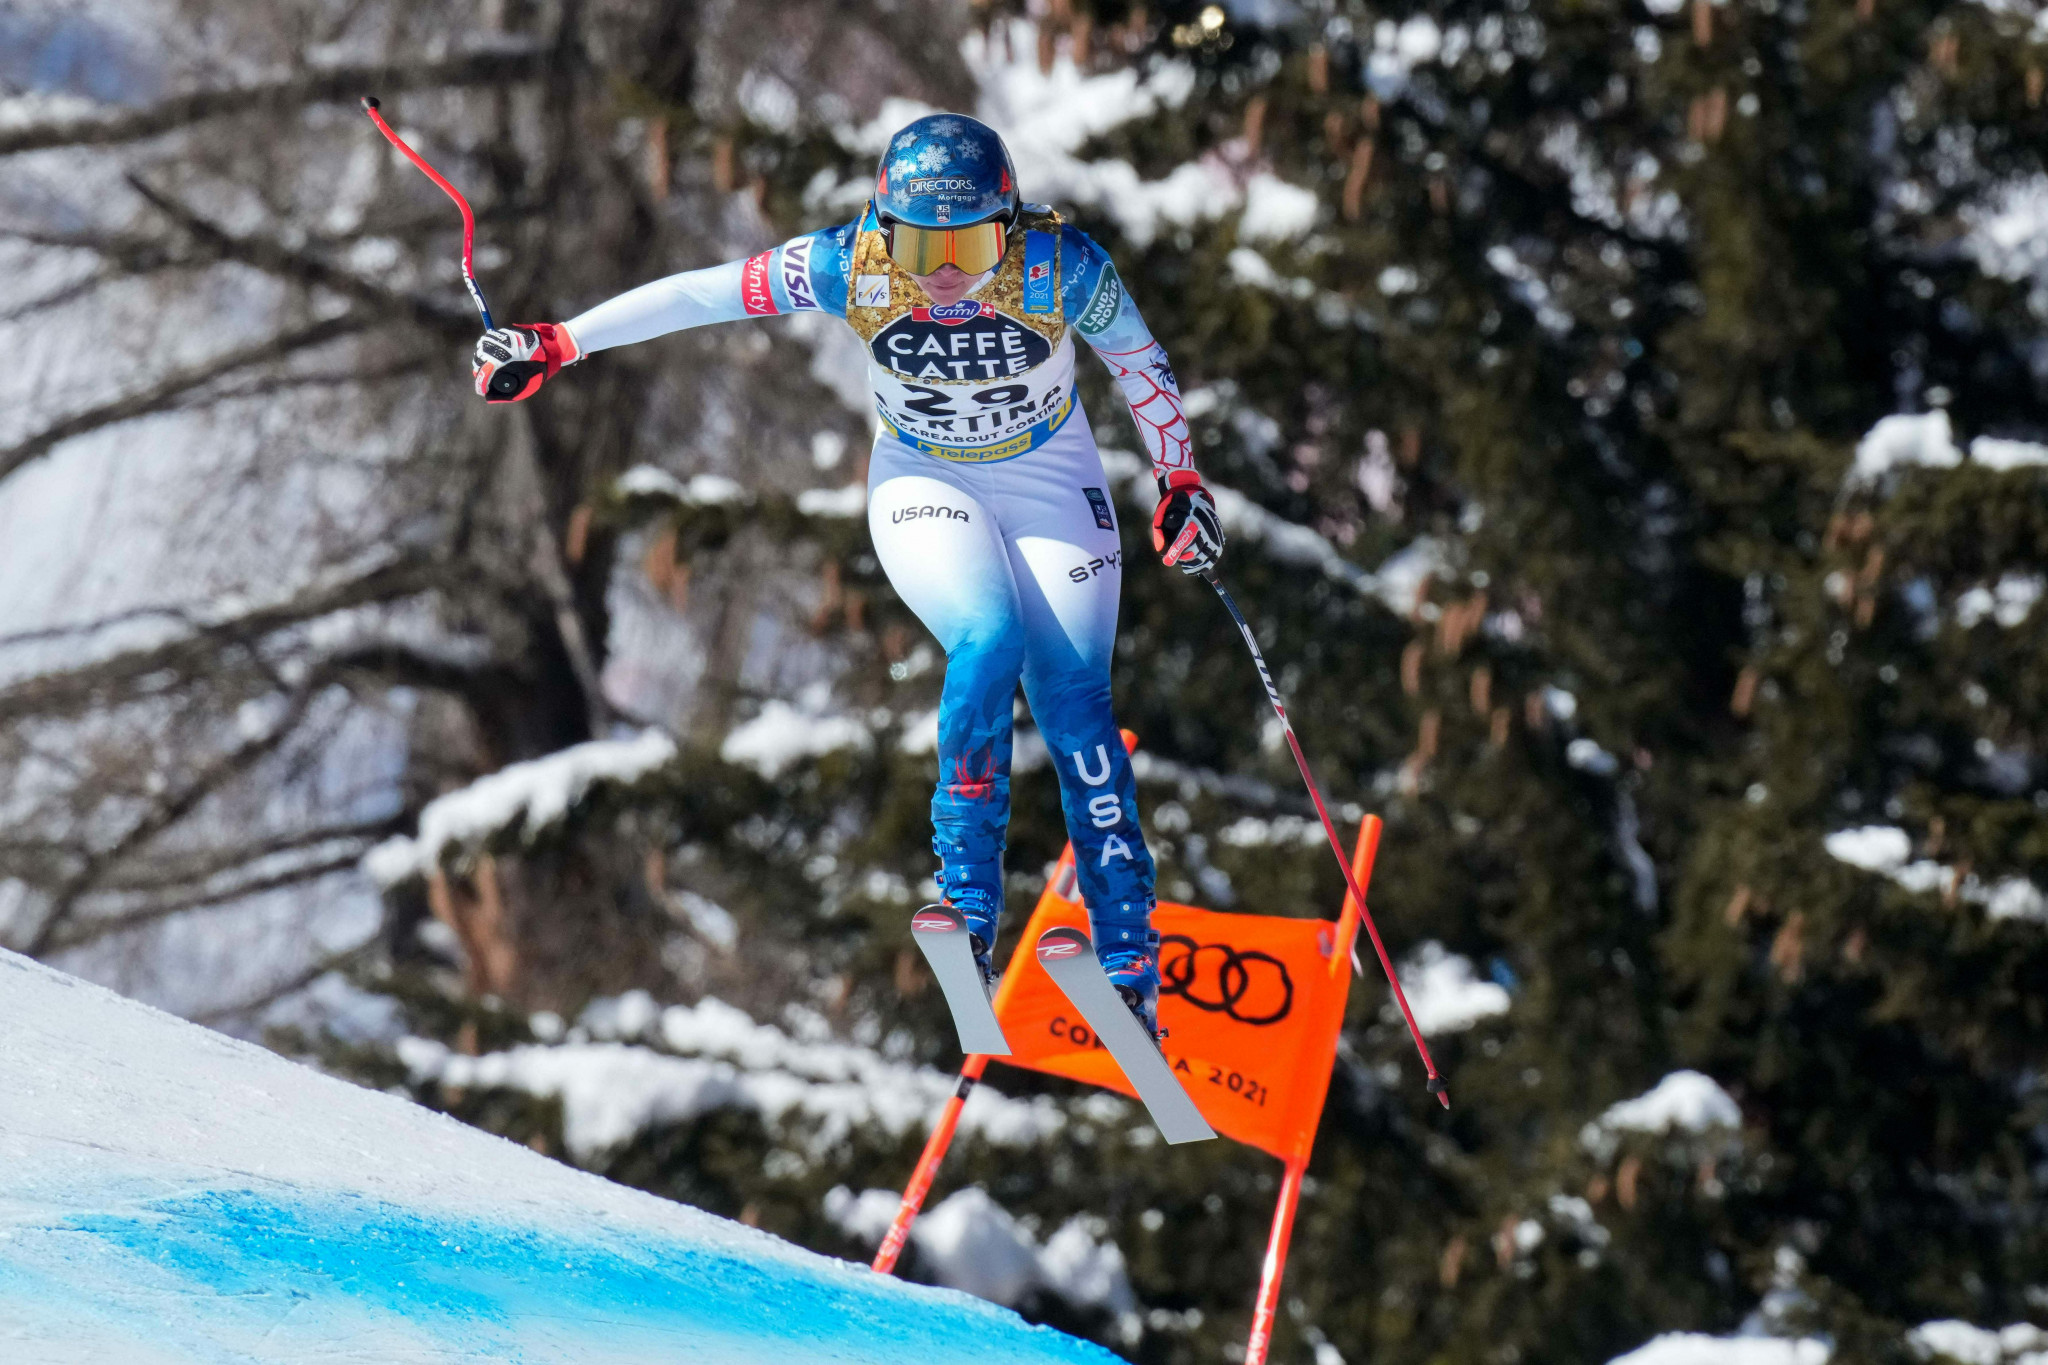 U.S. Ski & Snowboard athletes to receive boost for aviation careers as part of new sponsorship deal